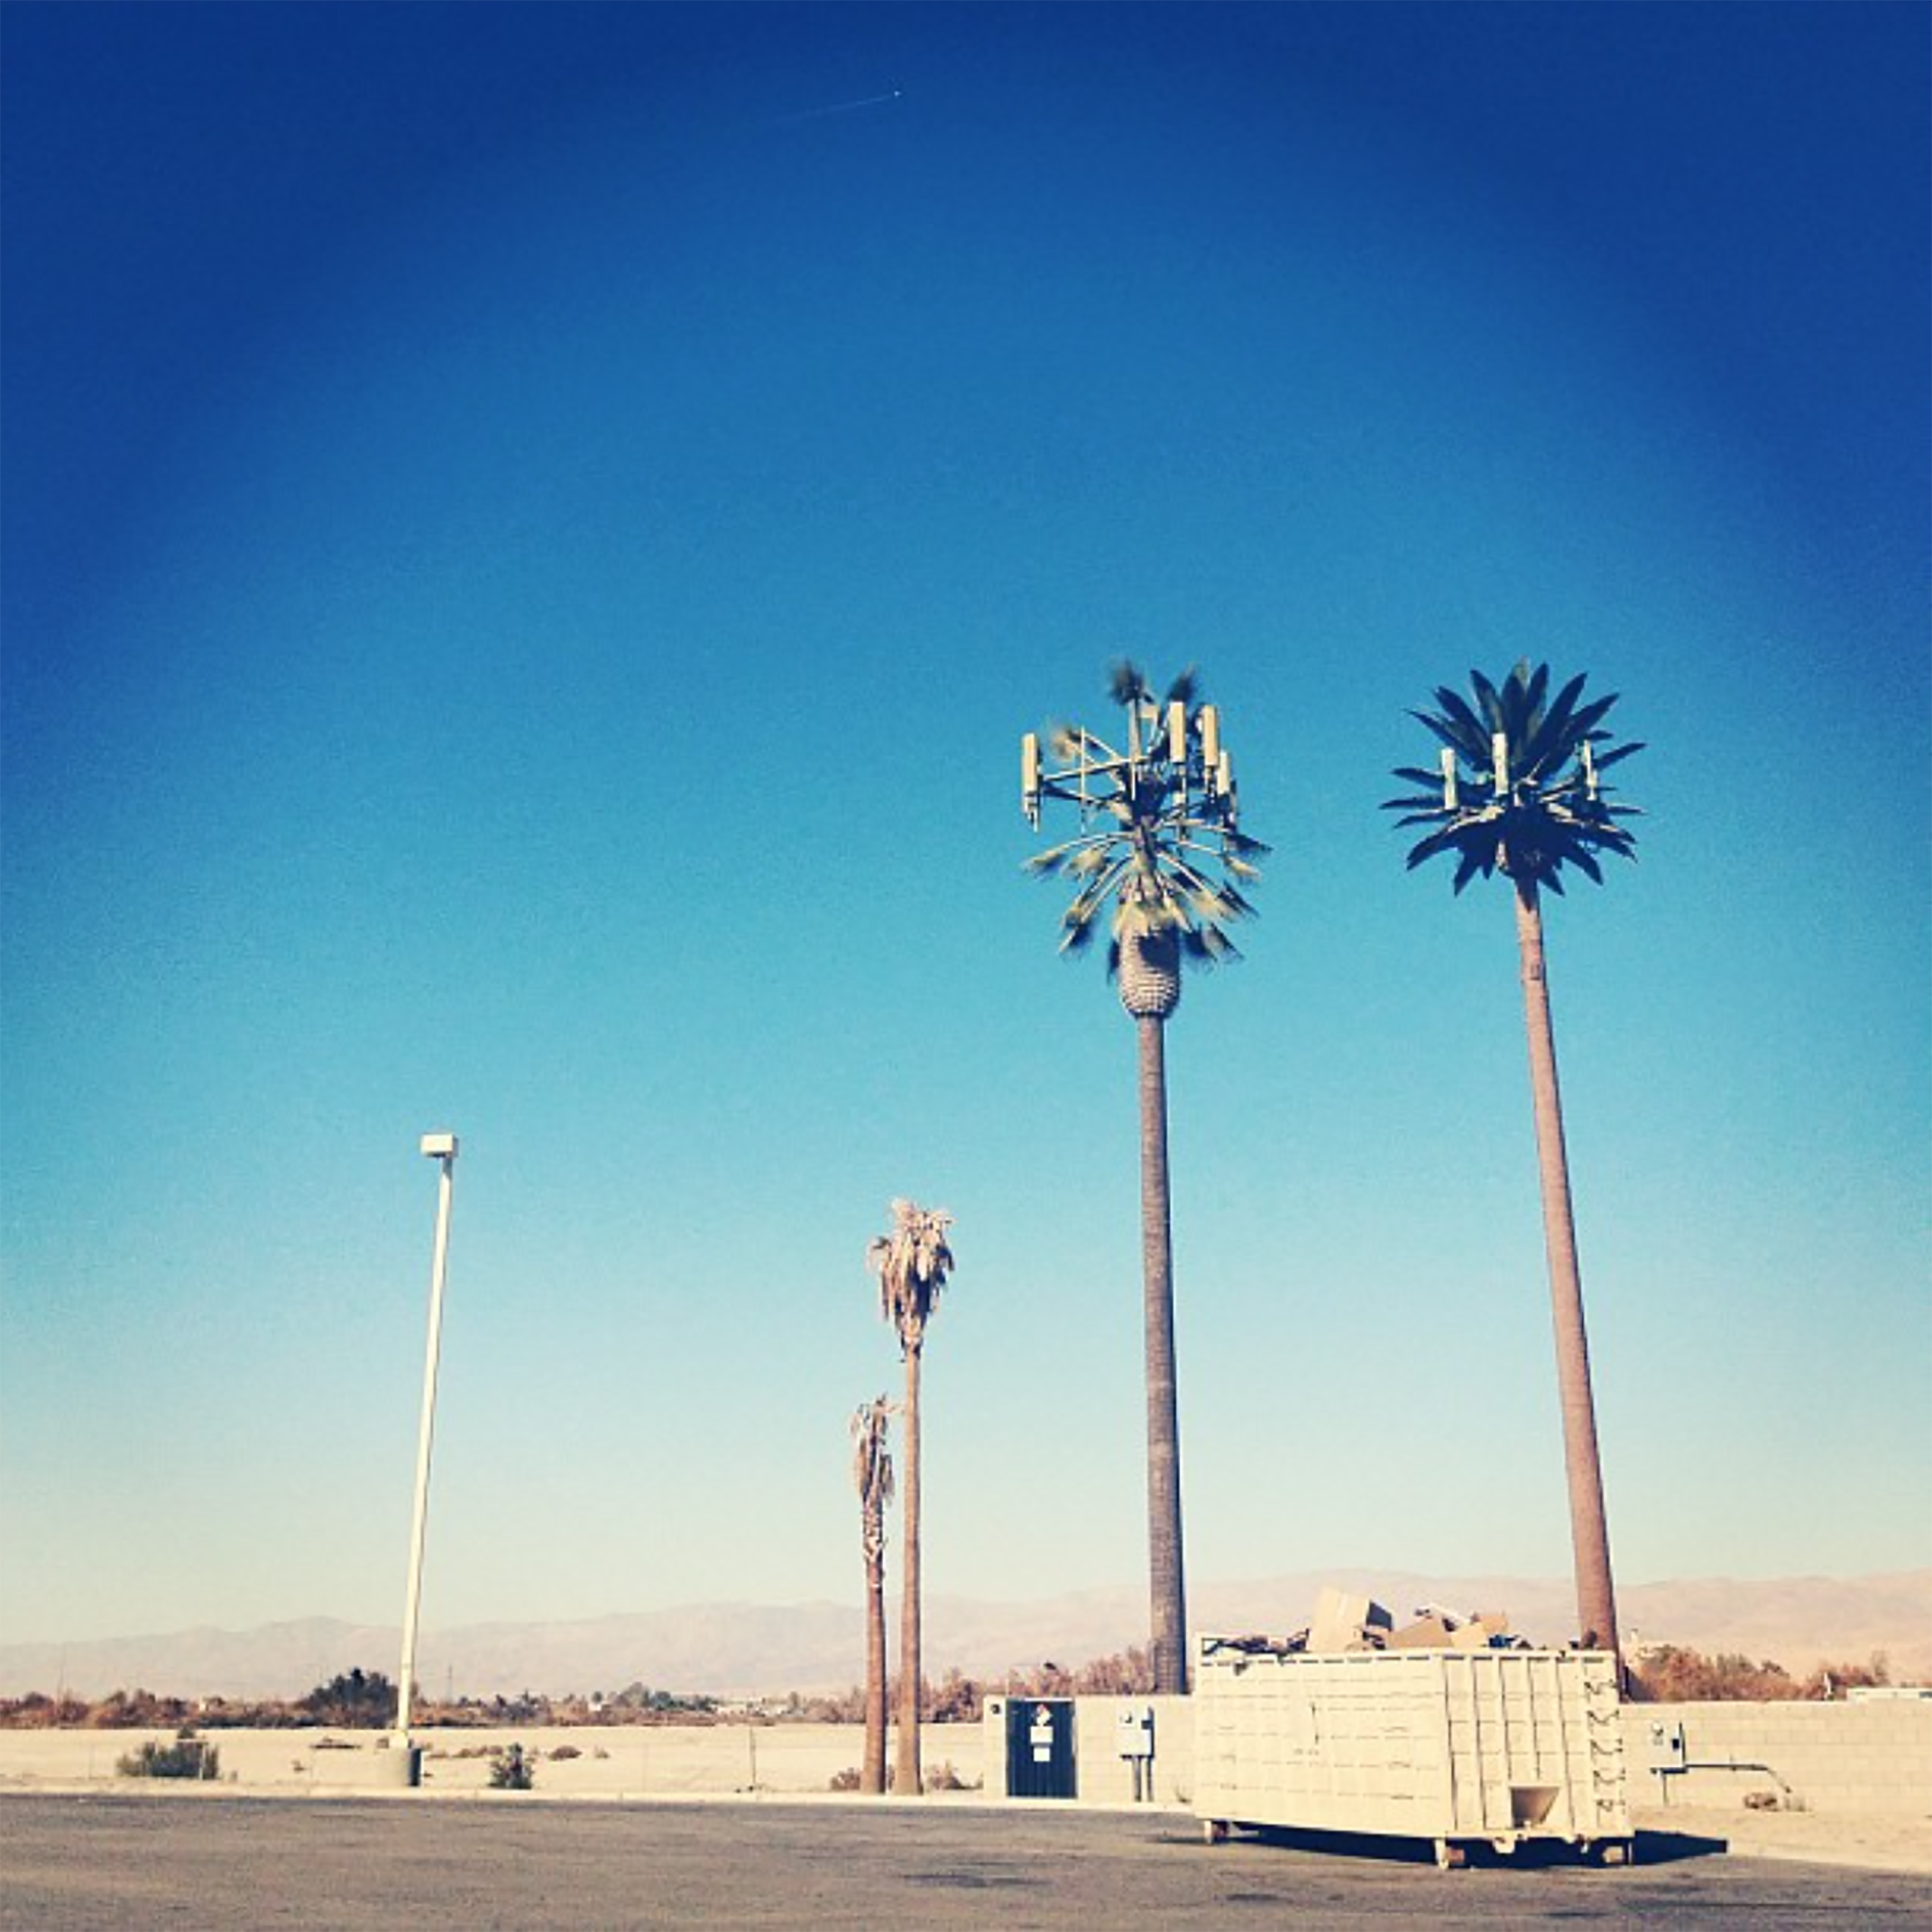 Fig. 1 Invisible infrastructures. Camouflaged antenna in the form of a palm tree.